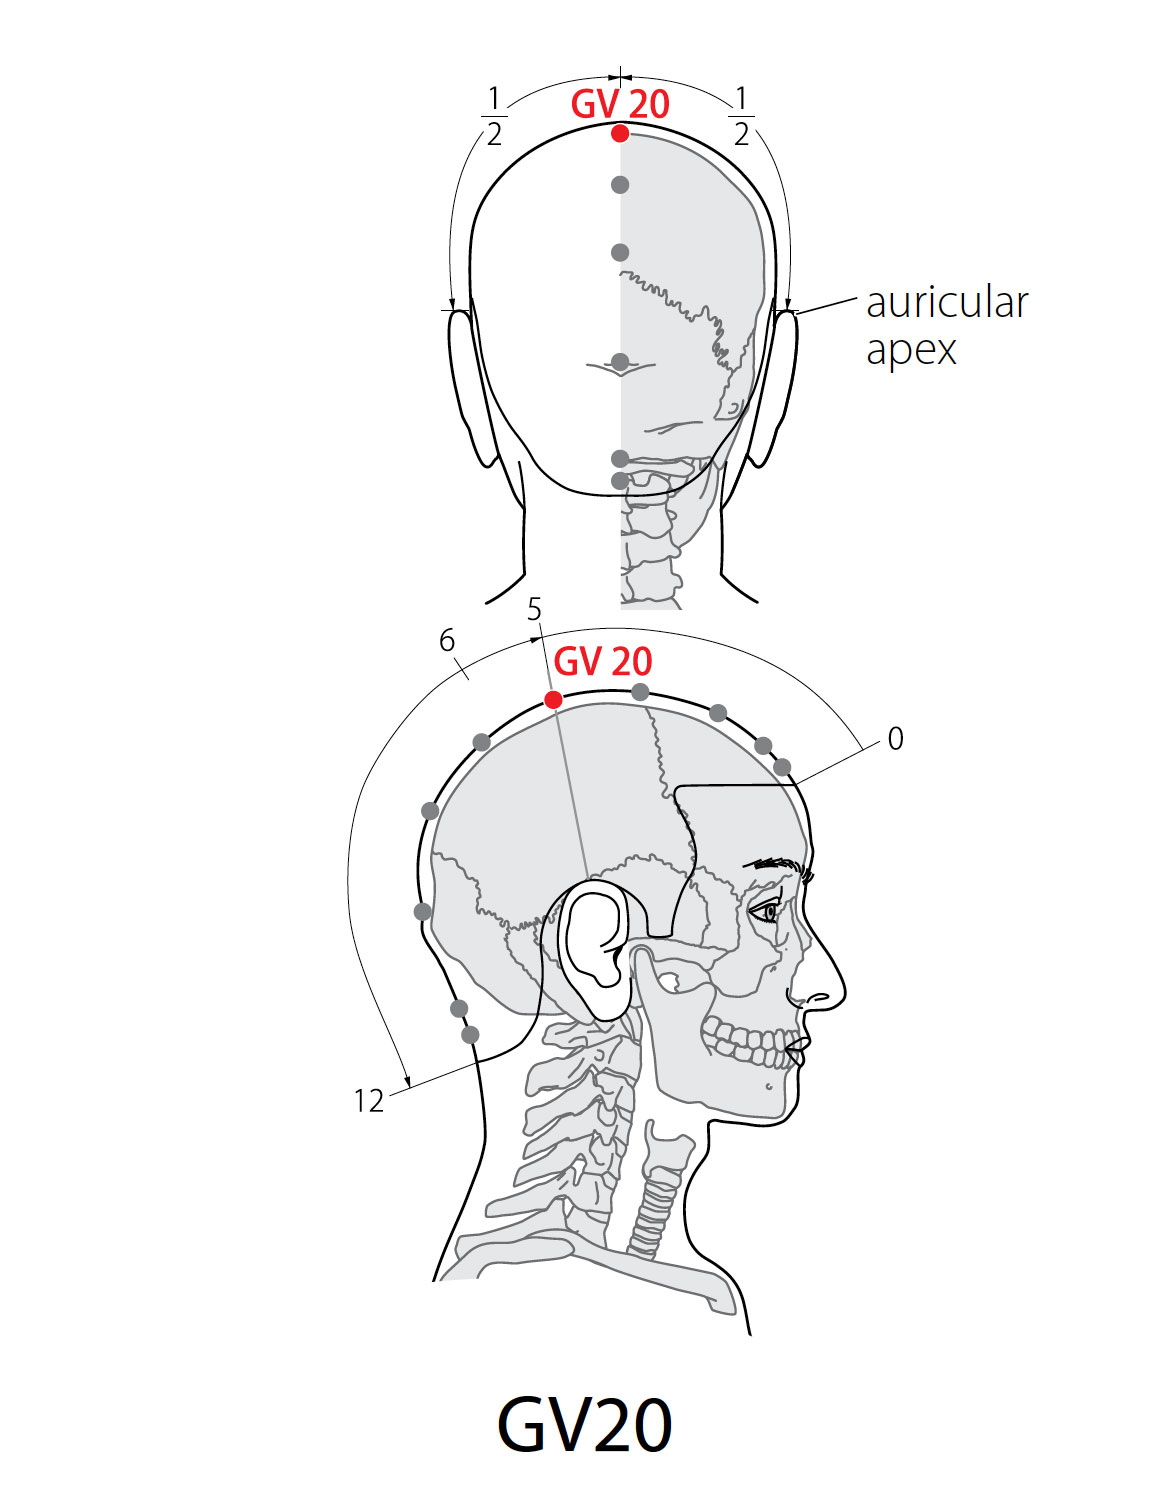 Acupuncture Point: Governor Vessel 20 - Acupuncture Technology News